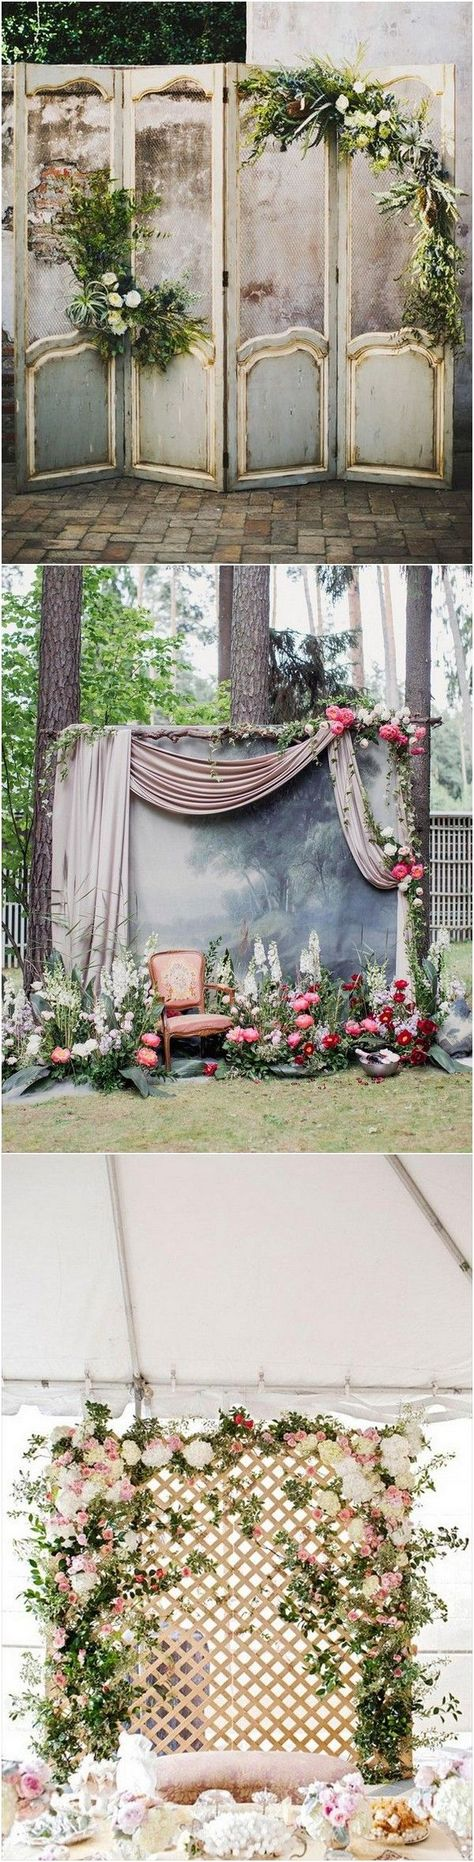 vintage door inspired wedding backdrop ideas with greenery decorations